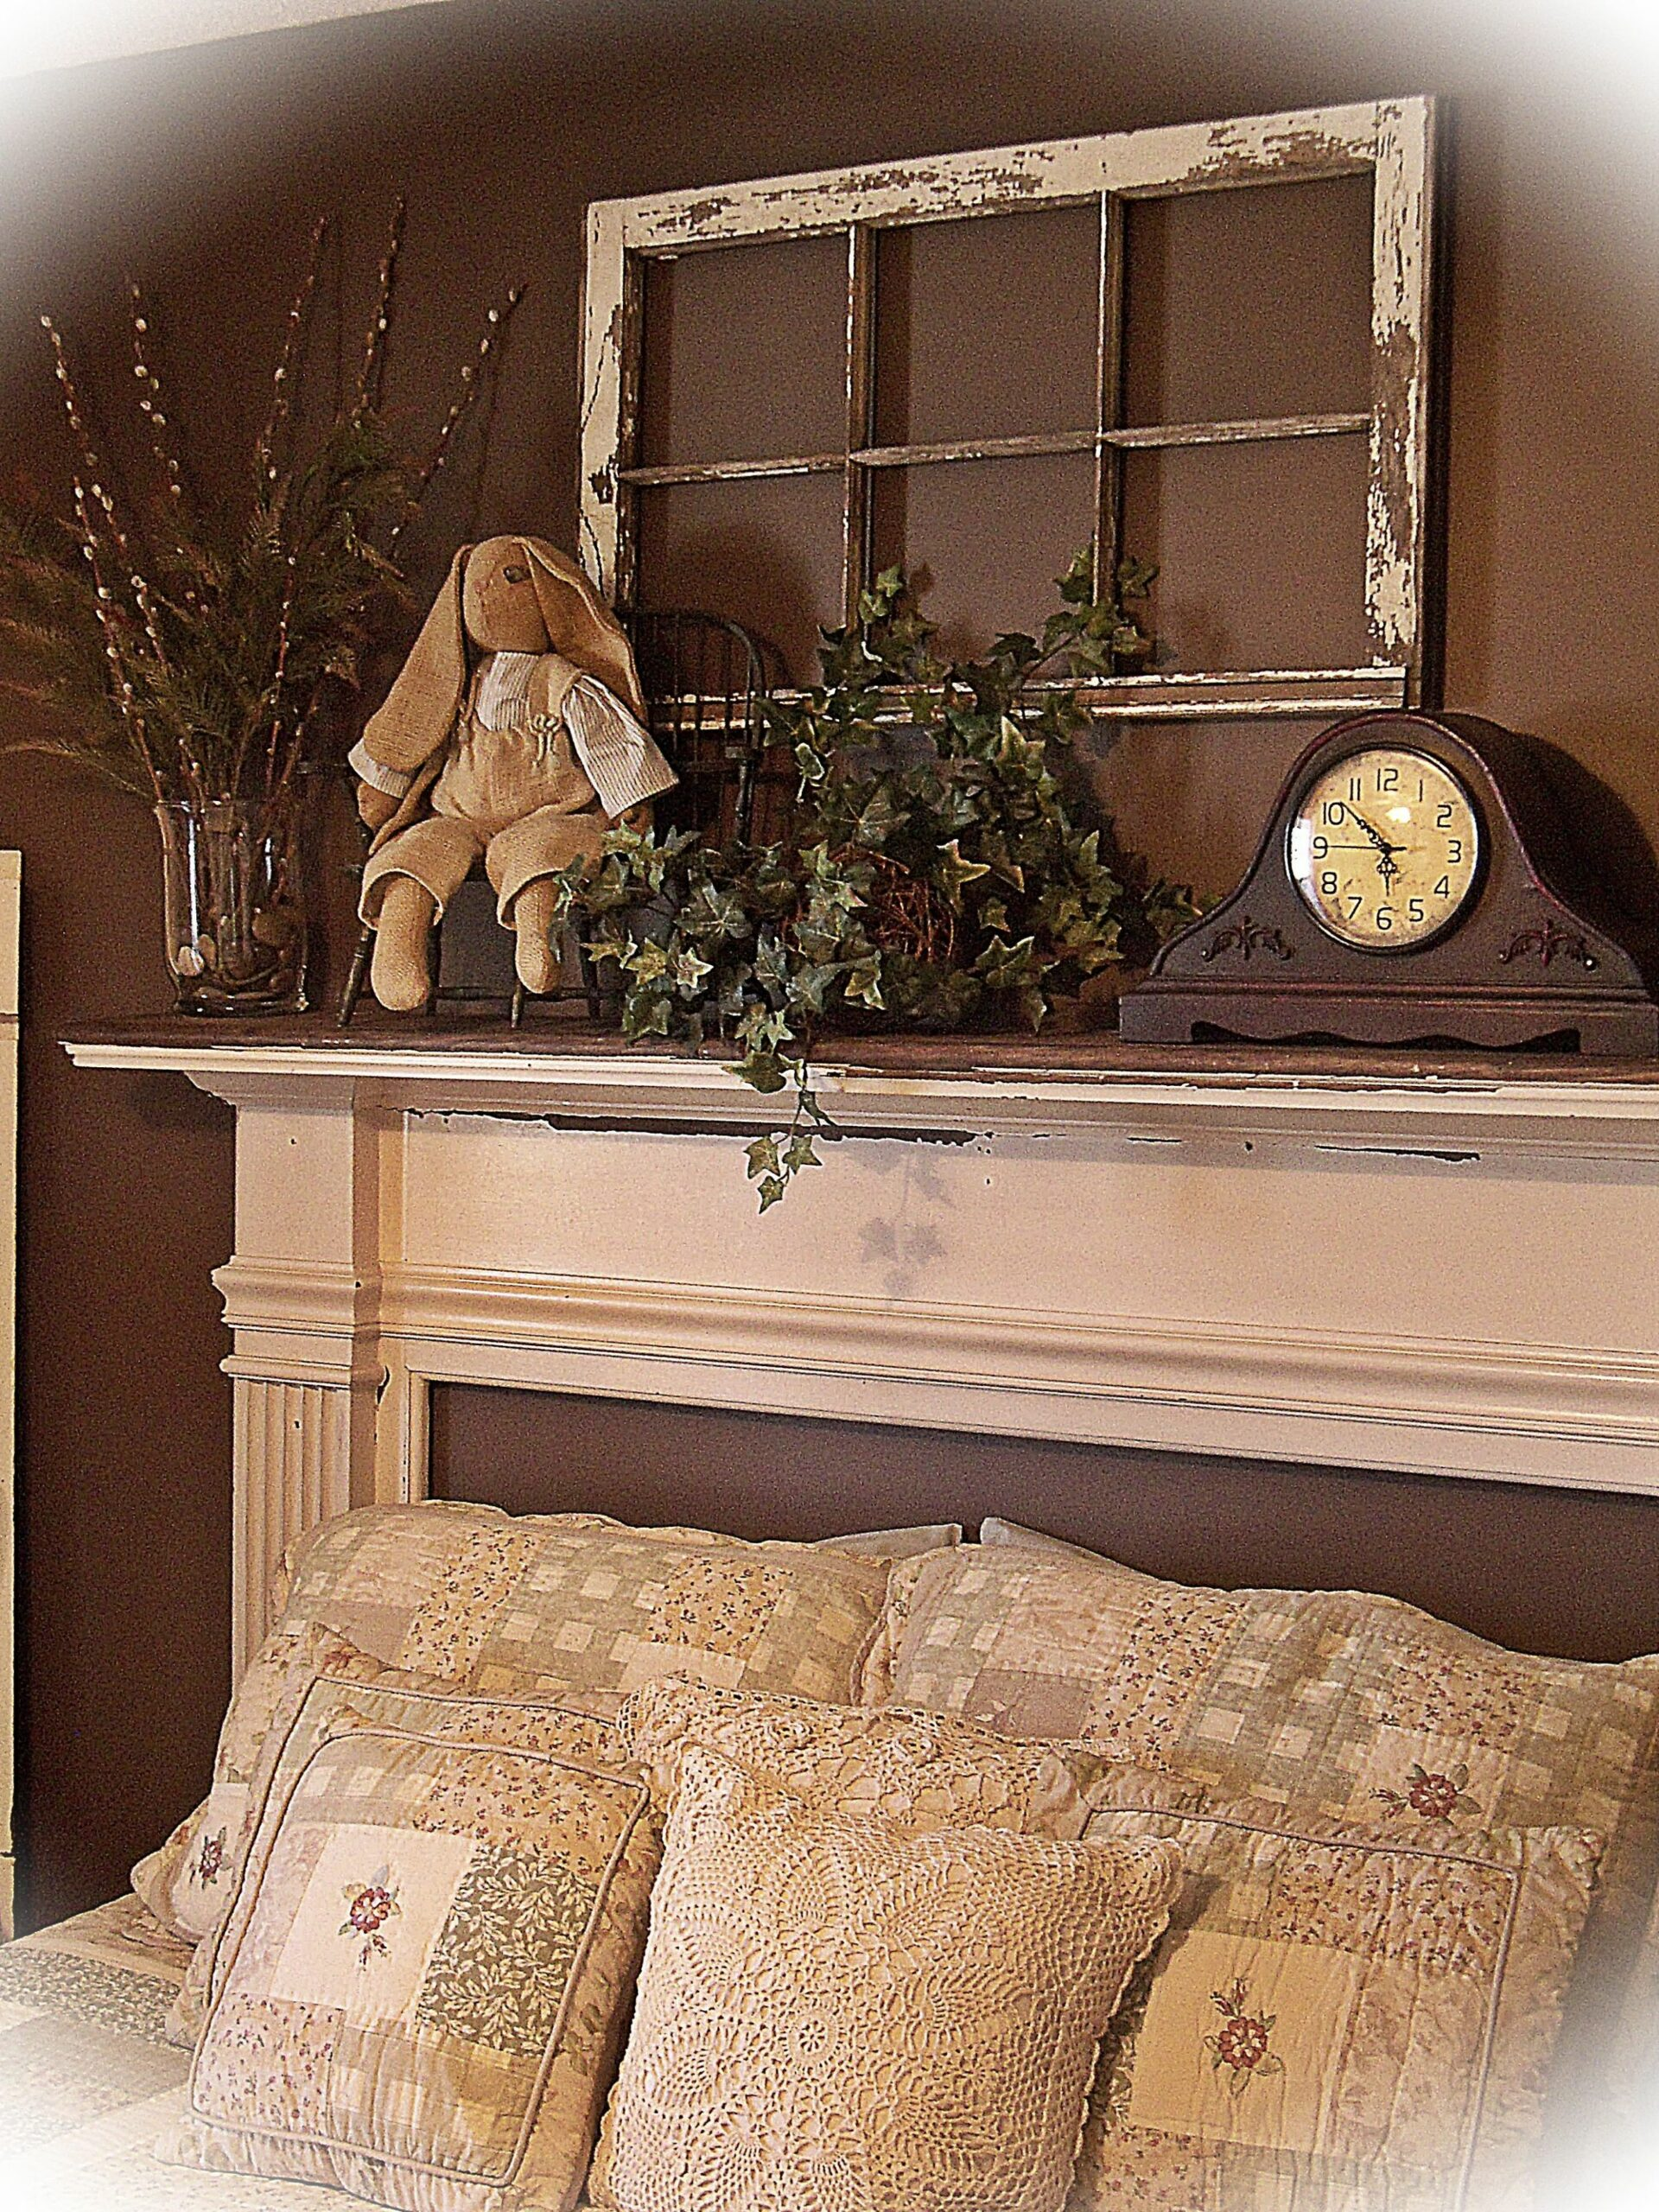 mantle headboard. already have plenty of old windows to use ...